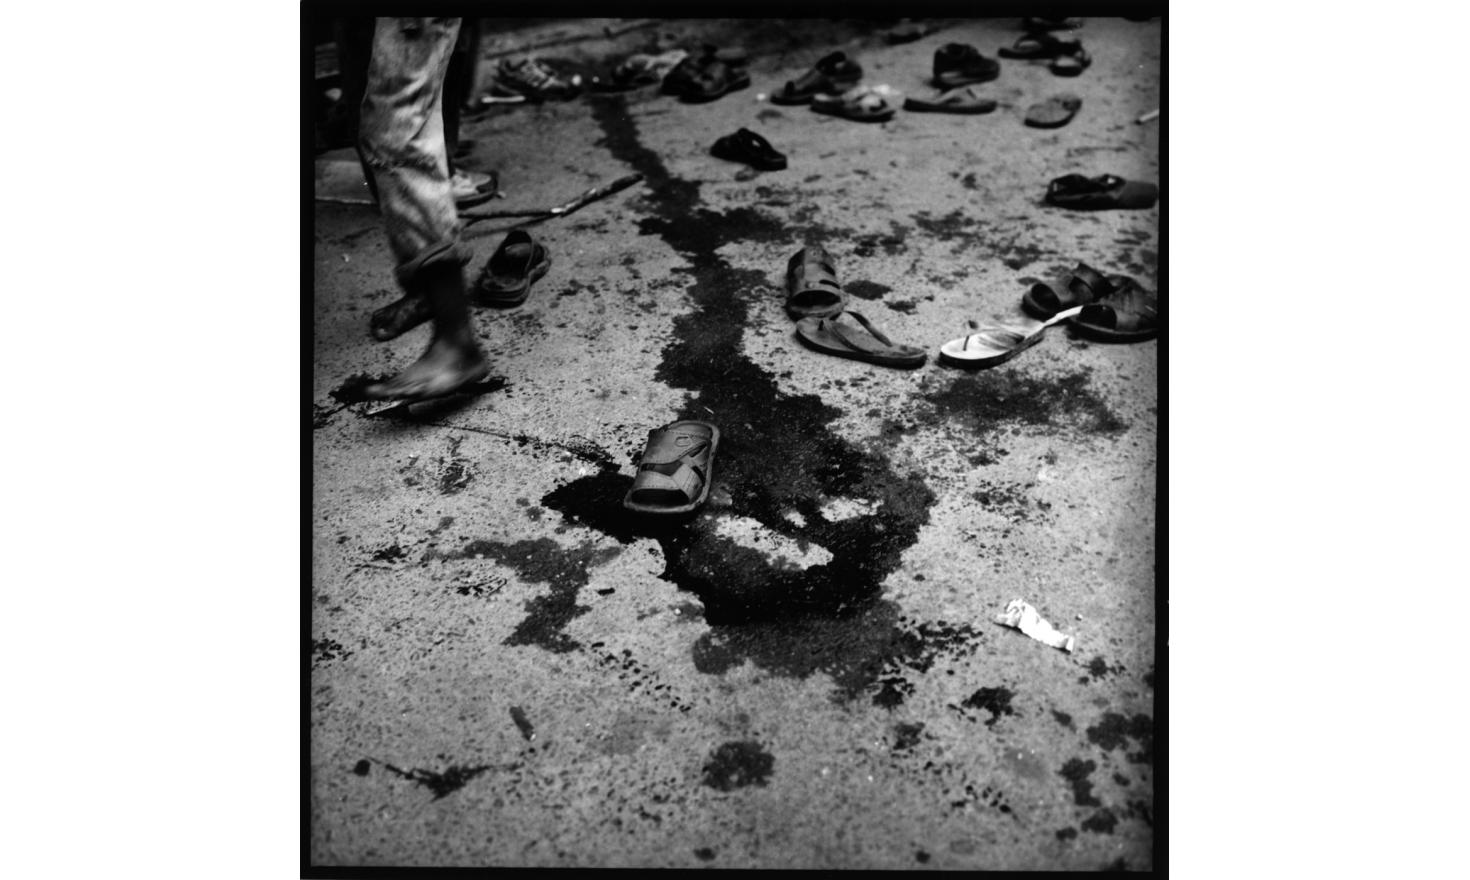 shoes of protestors who ran away or got injured by riot police, Asan chowk, Center of Kathmandu. The blood track belongs to a very young boy who got his head wide open by police bamboo stick. 22d of April 2006 Katmandu Nepal